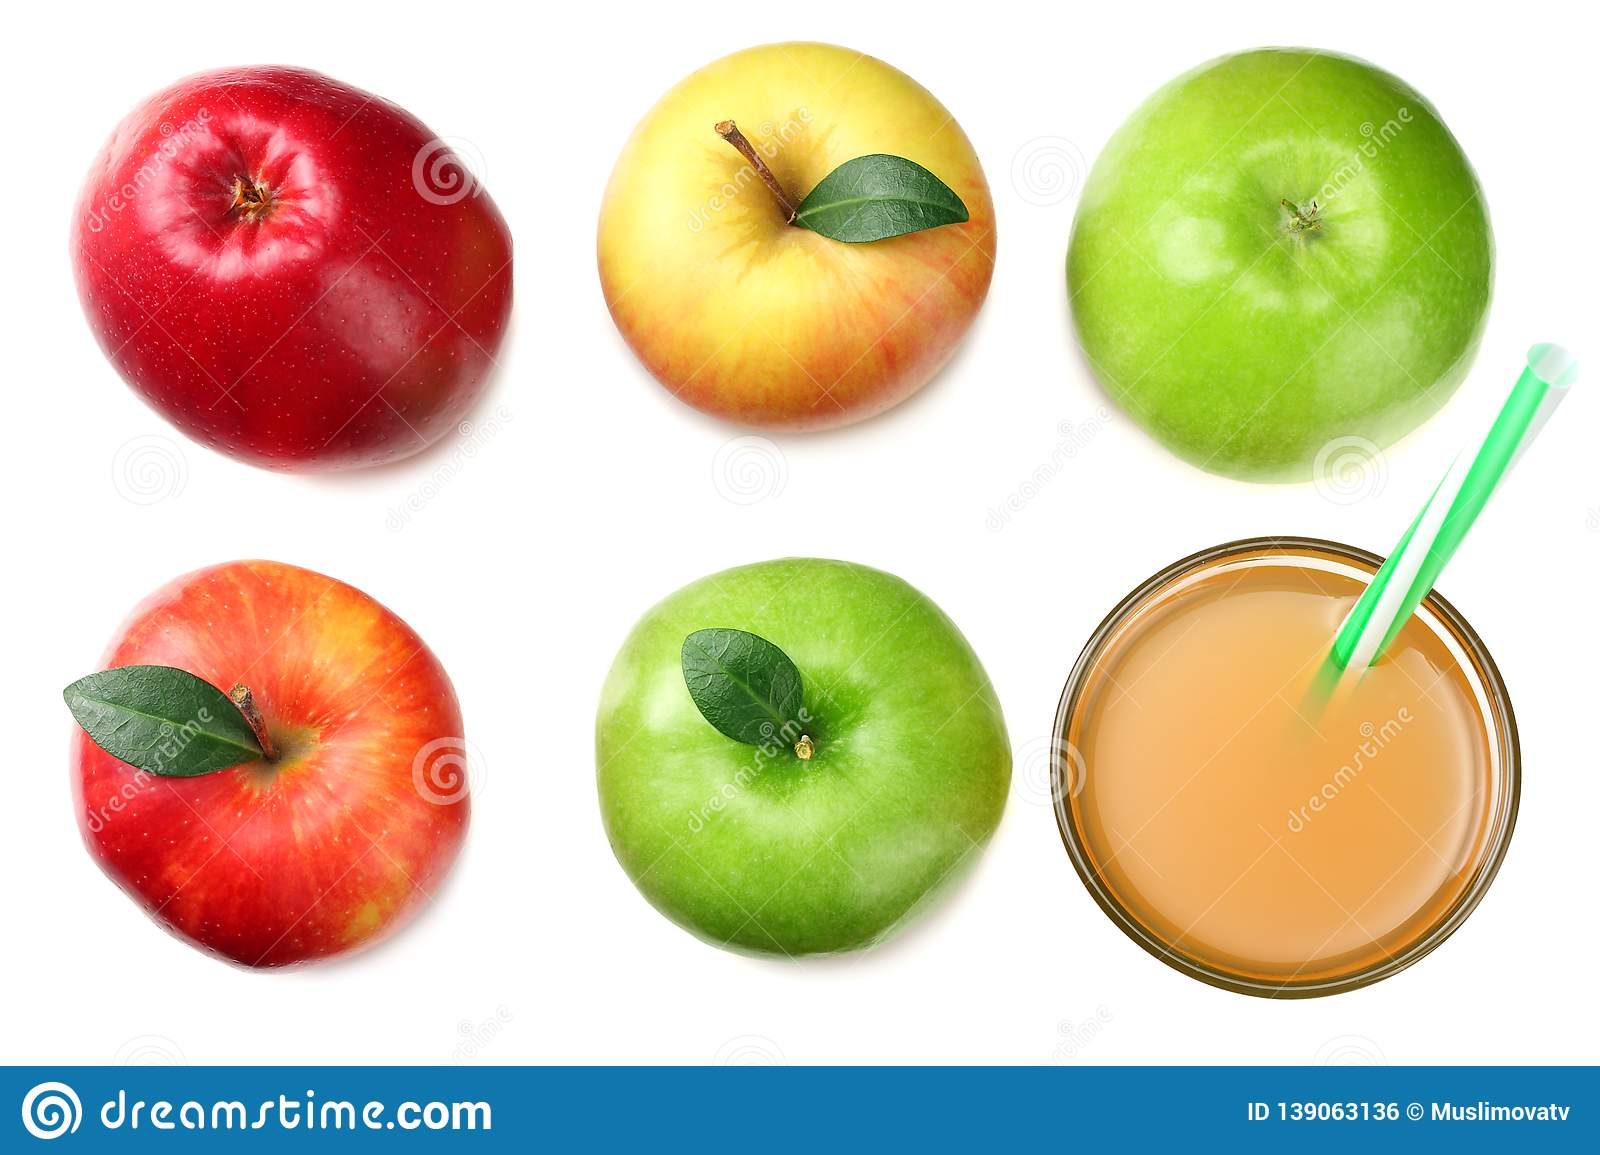 green and red apples with apple juice isolated on white background. top view